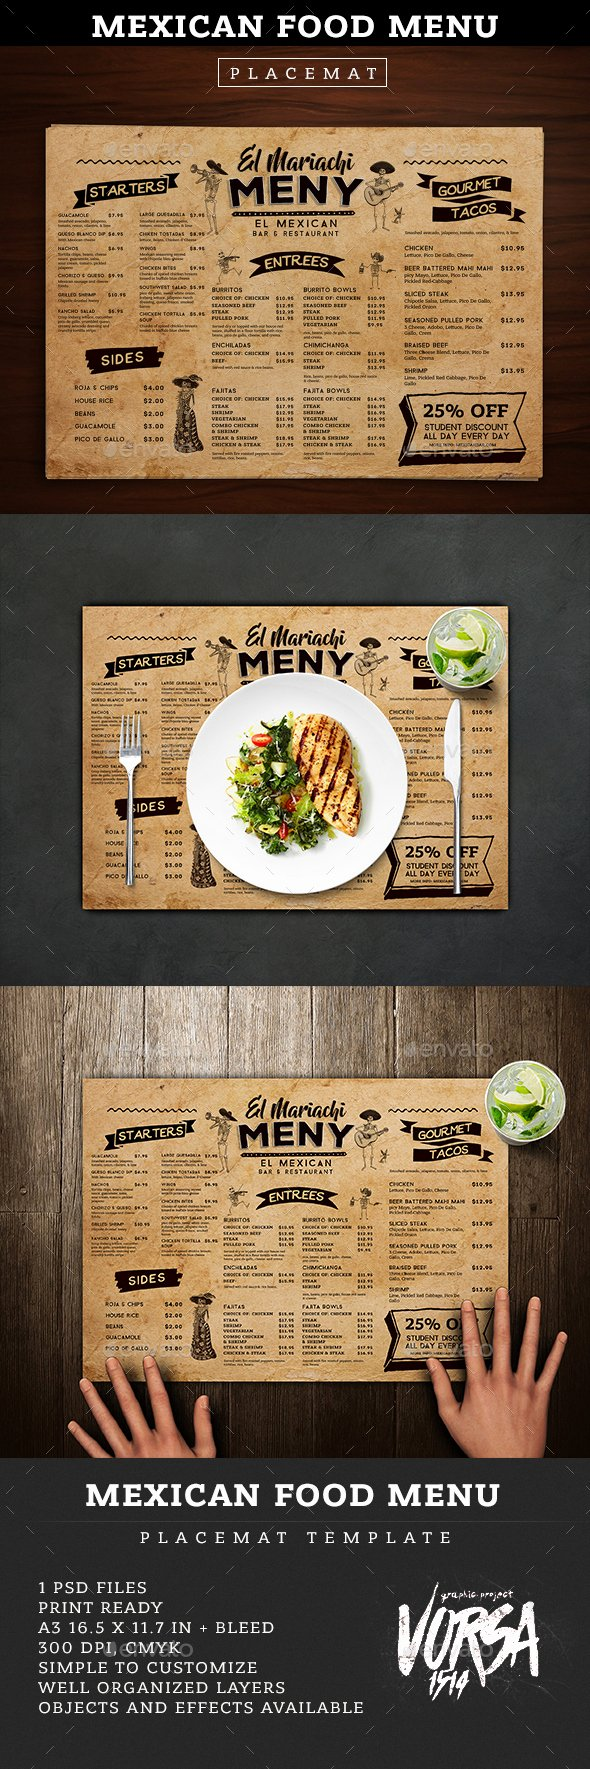 Mexican Restaurant Menu Template Inspirational Mexican Food Menu Placemat Template by Vorsa